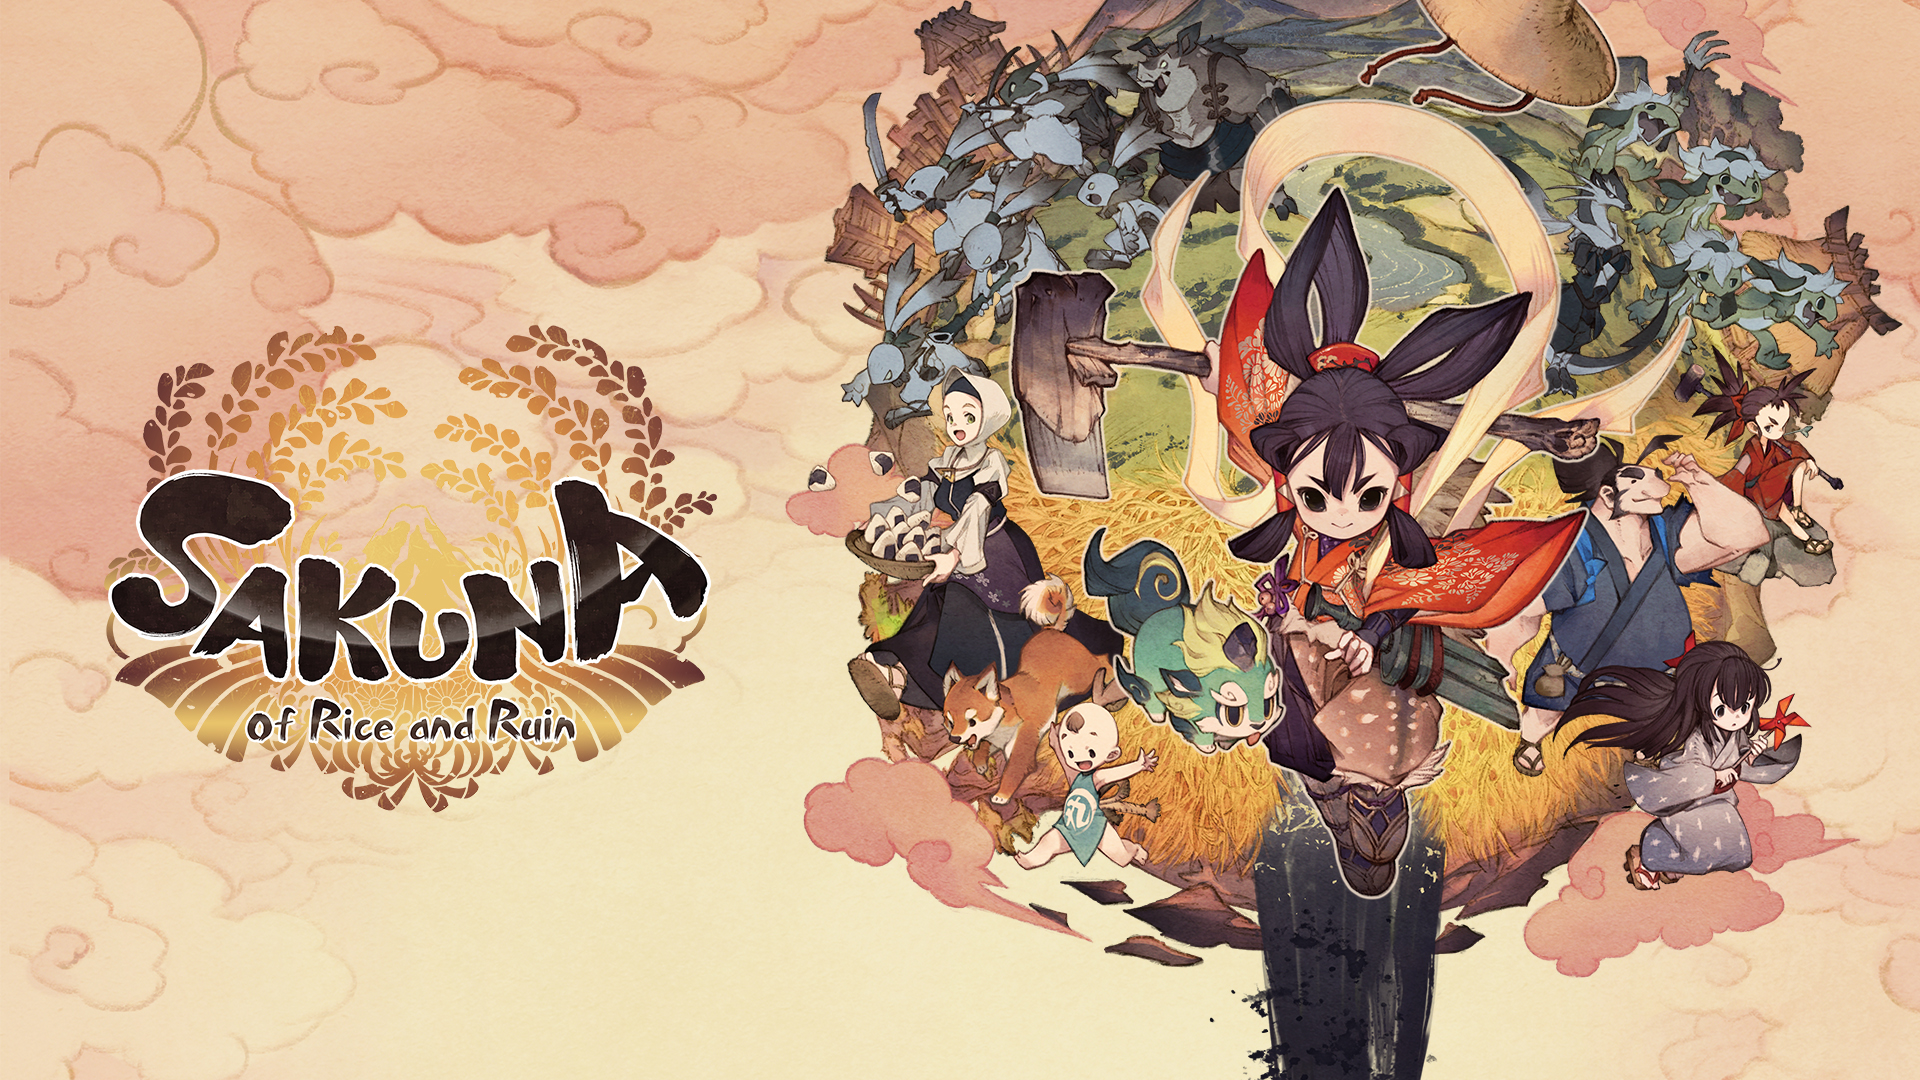 Sakuna: Of Rice and Ruin - All the important tips about growing rice & fighting